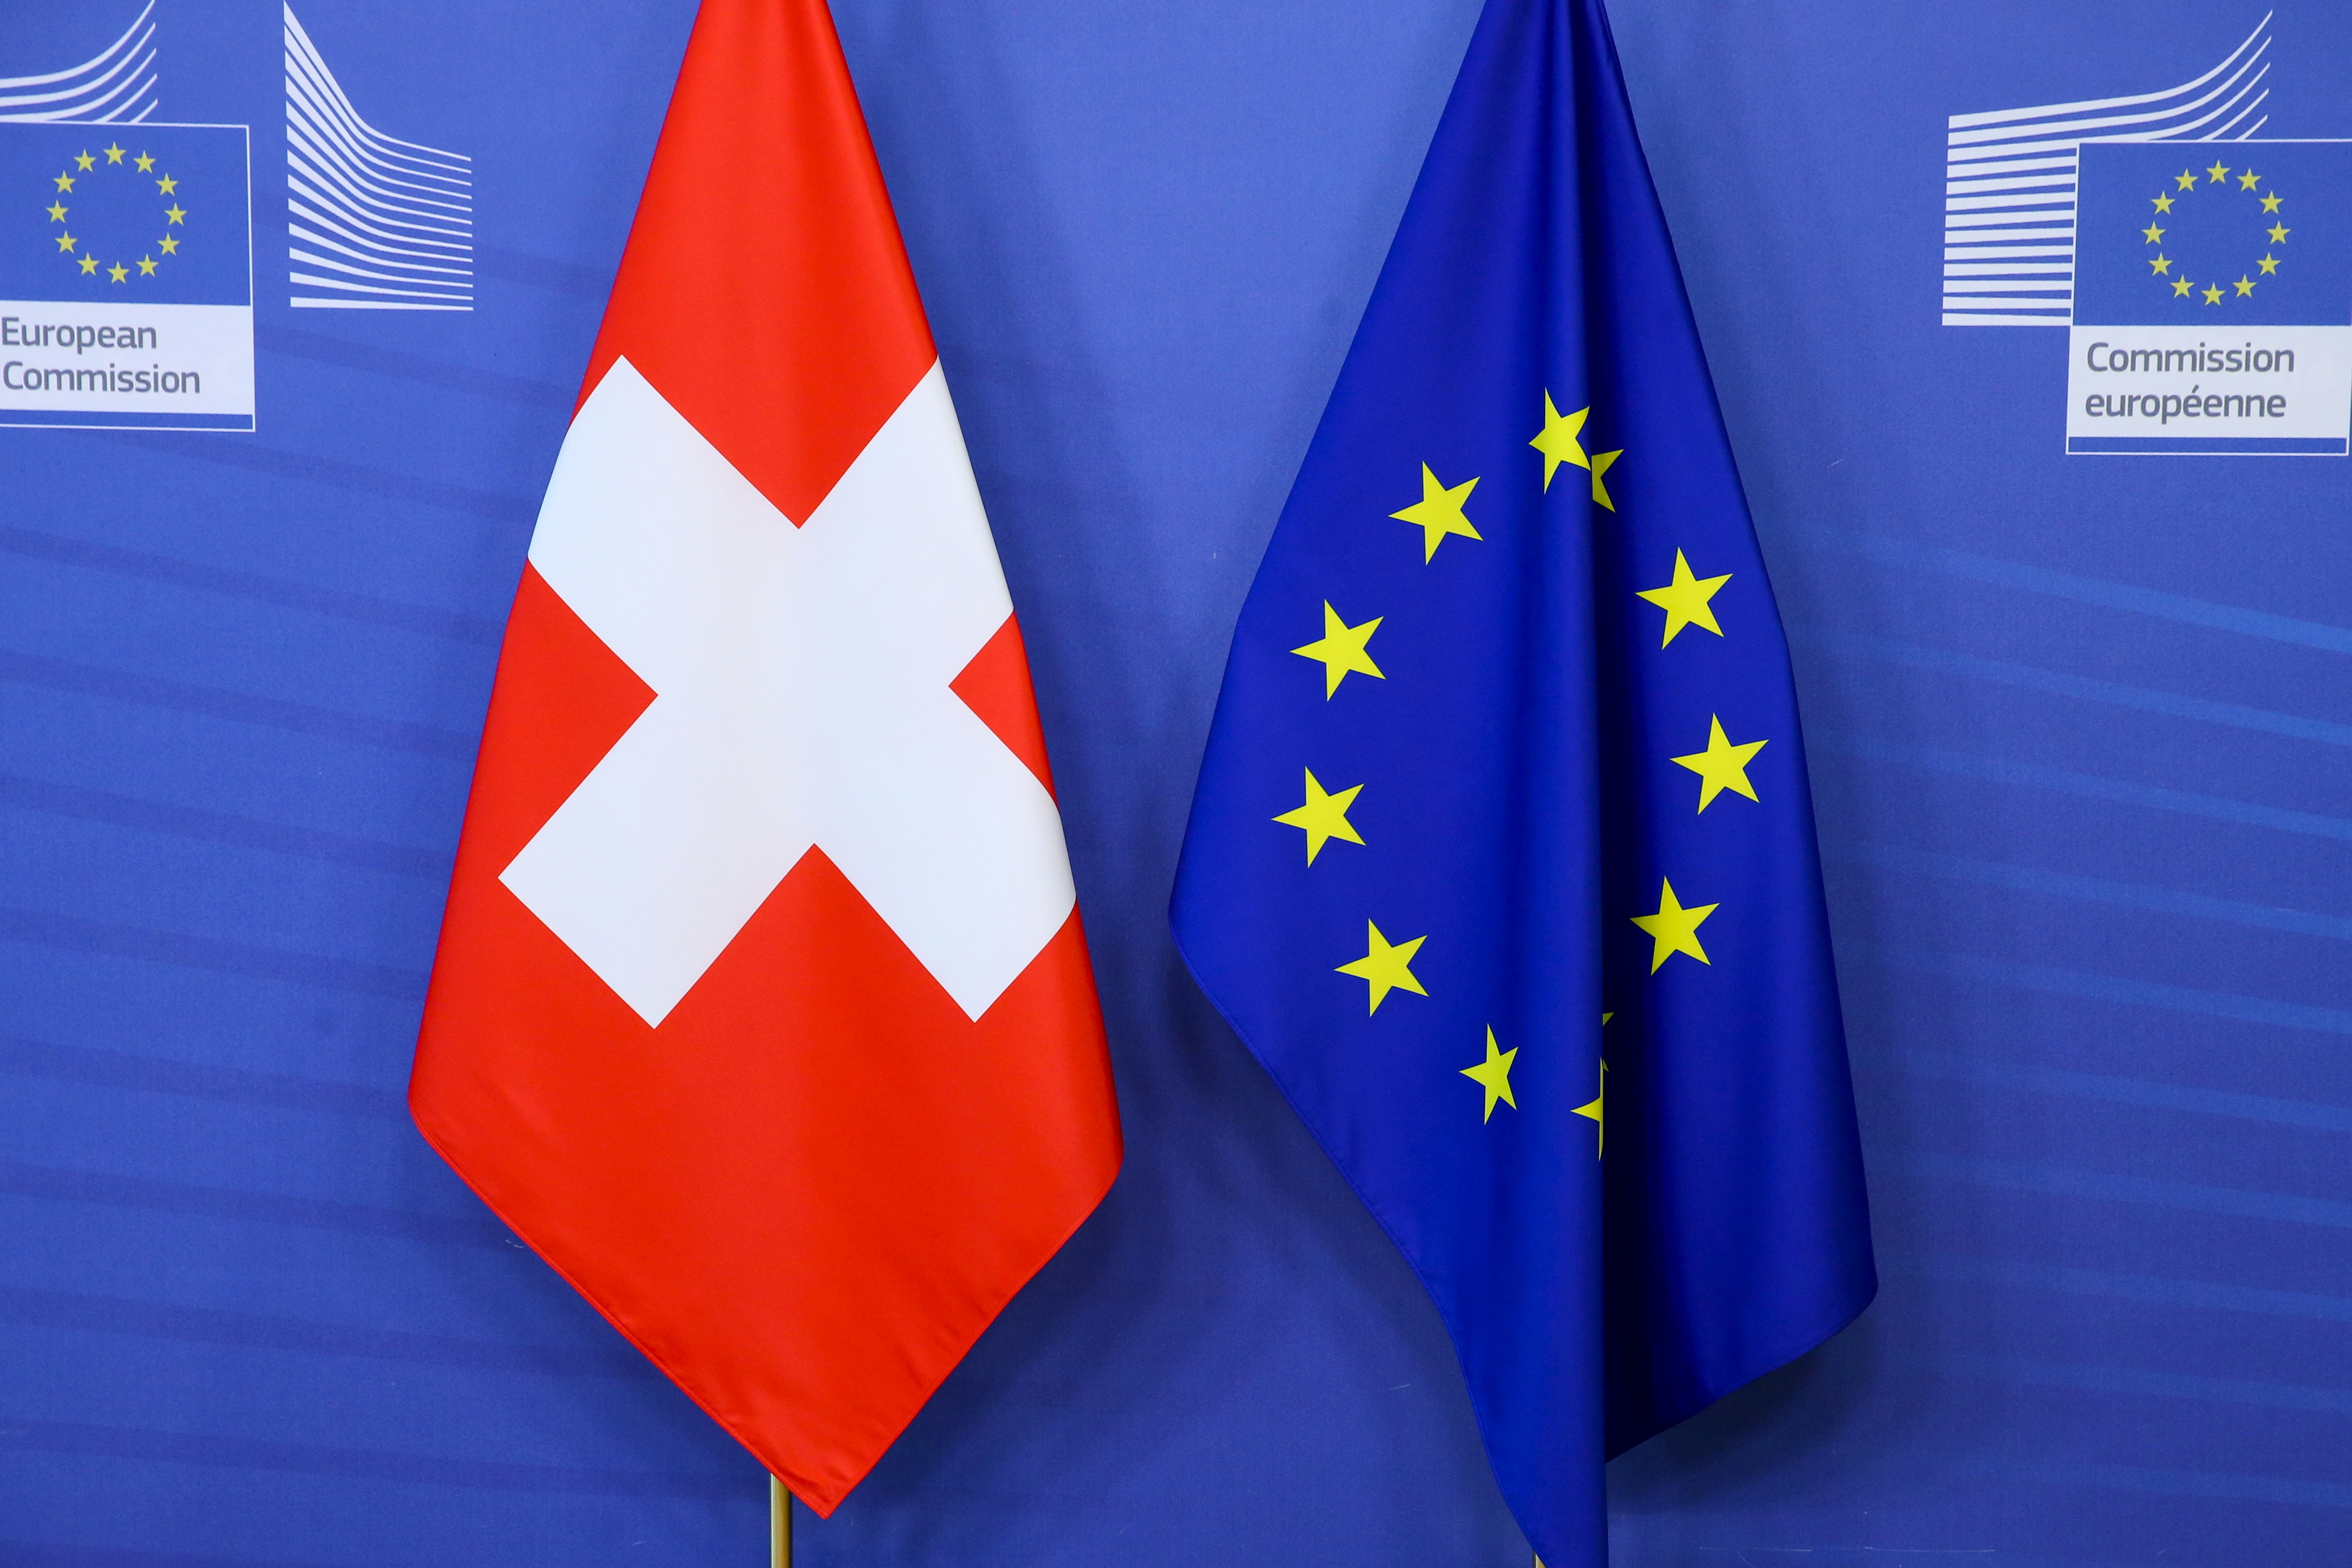 Switzerland's national flag and the European Union flag are seen at the European Commission building in Brussels, Belgium April 23, 2021. Francois Walschaerts/Pool via REUTERS/File Photo